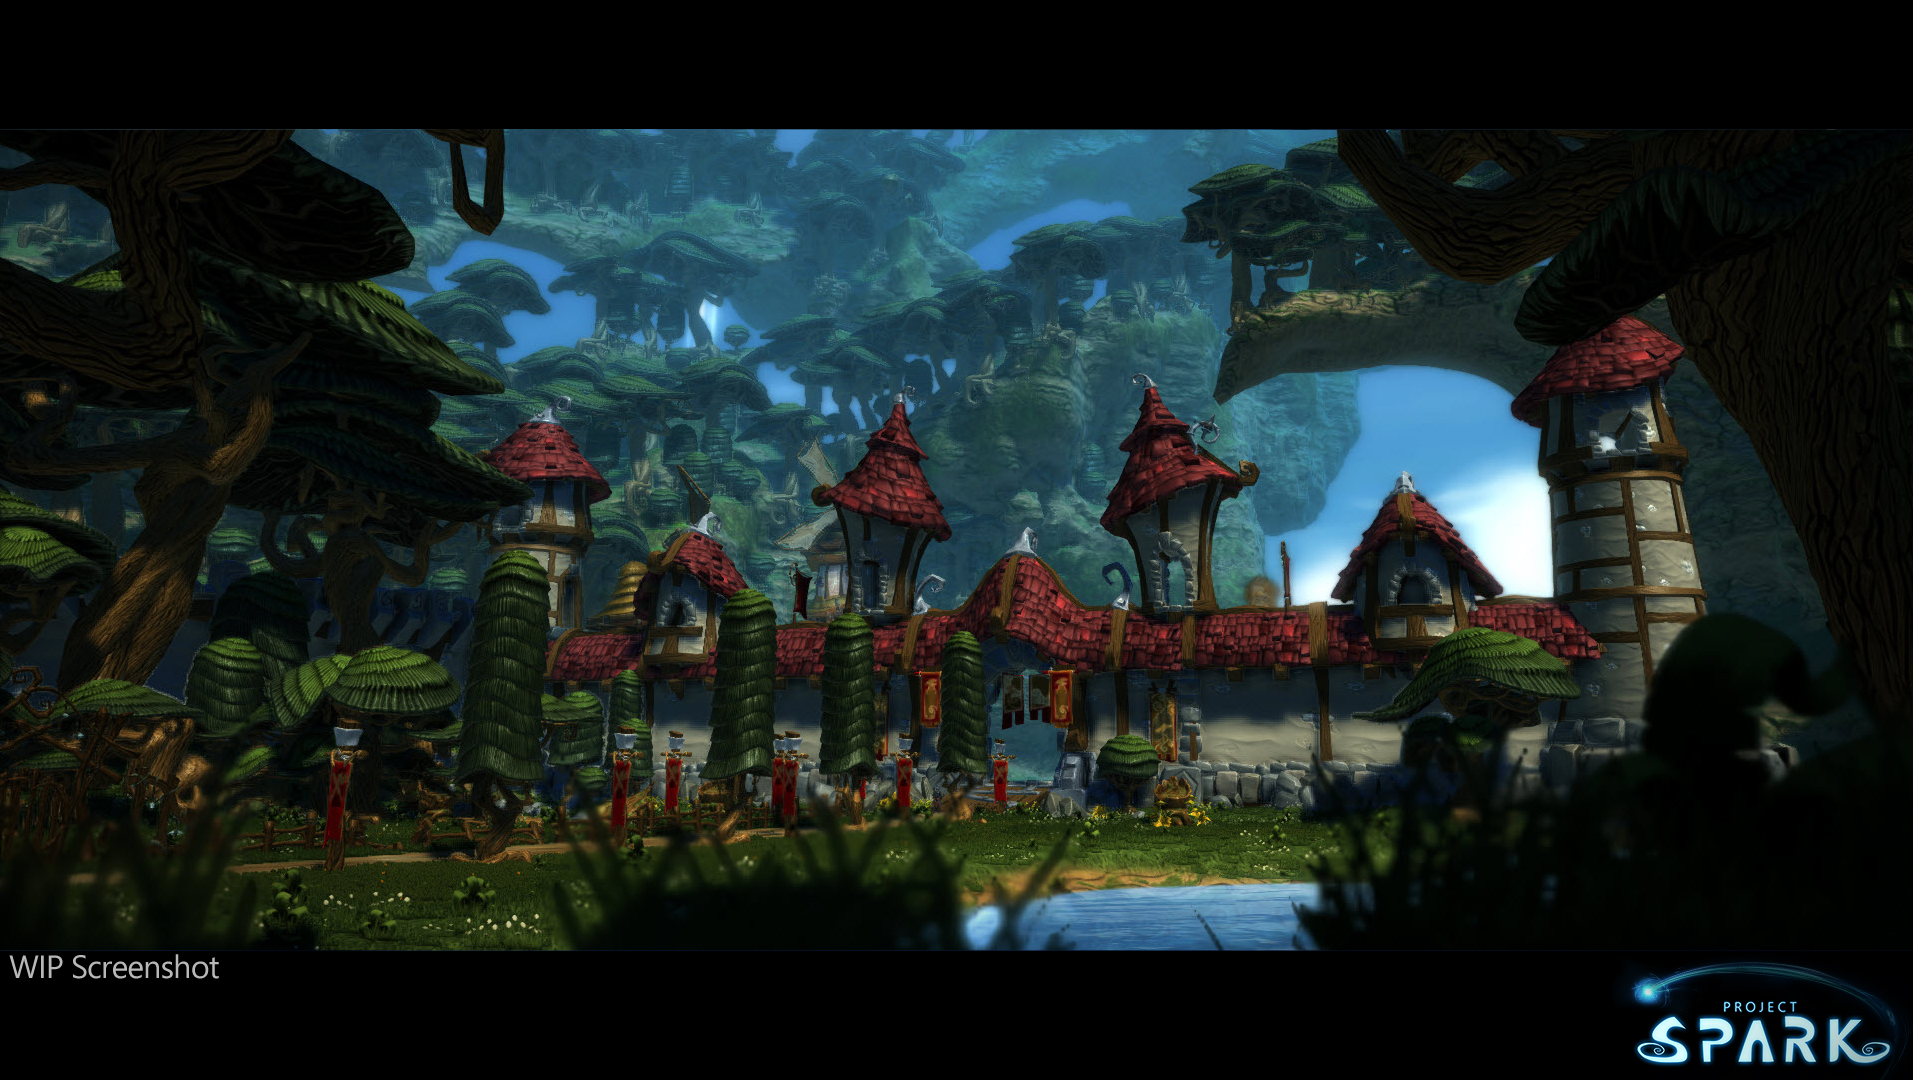 Project Spark video shows an hour of gameplay